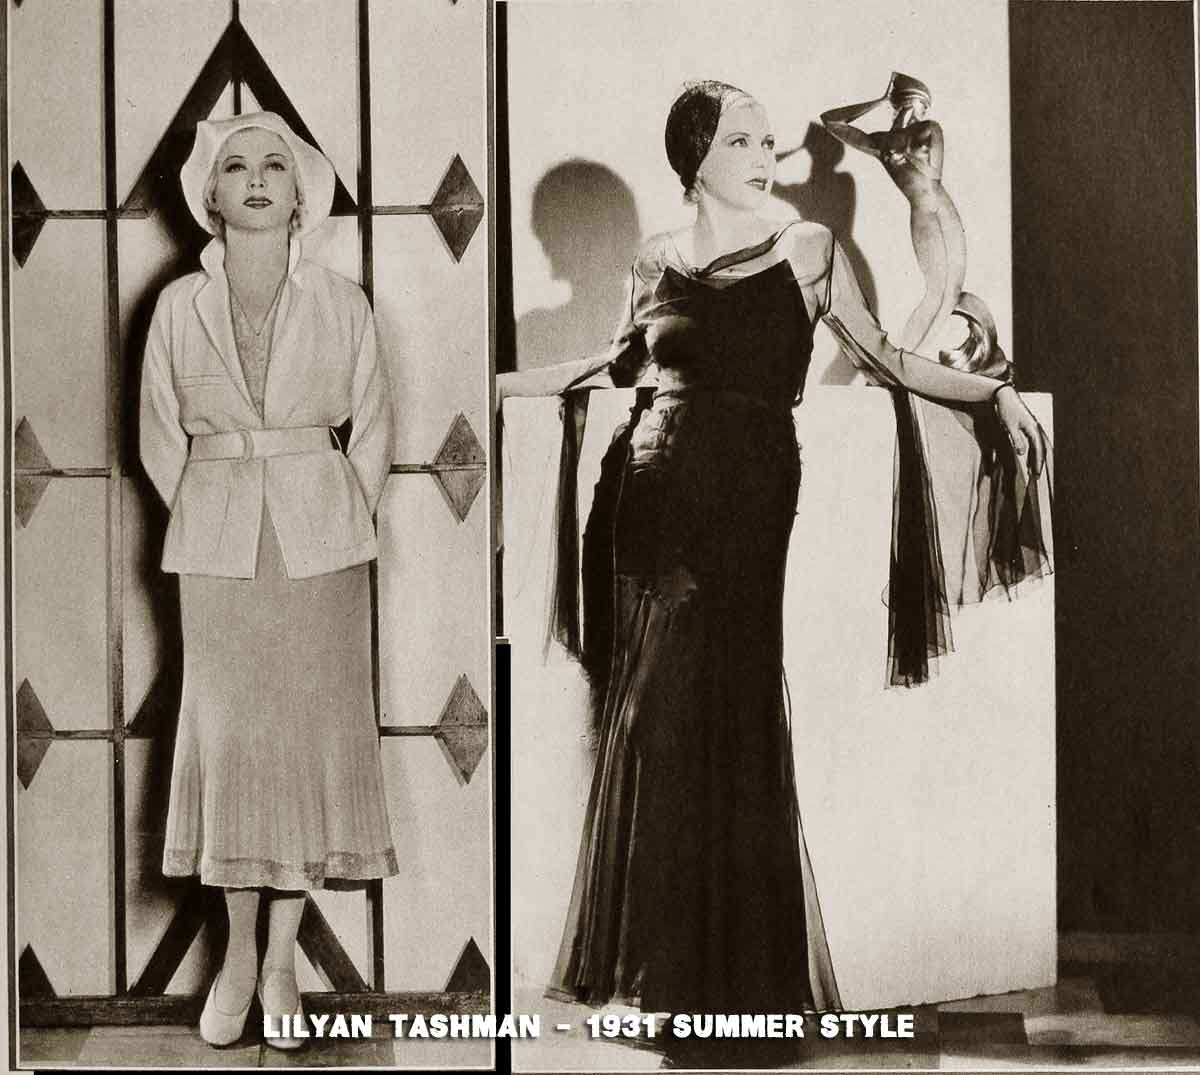 Two summer frocks worn by -Lilyan-Tashman-1931